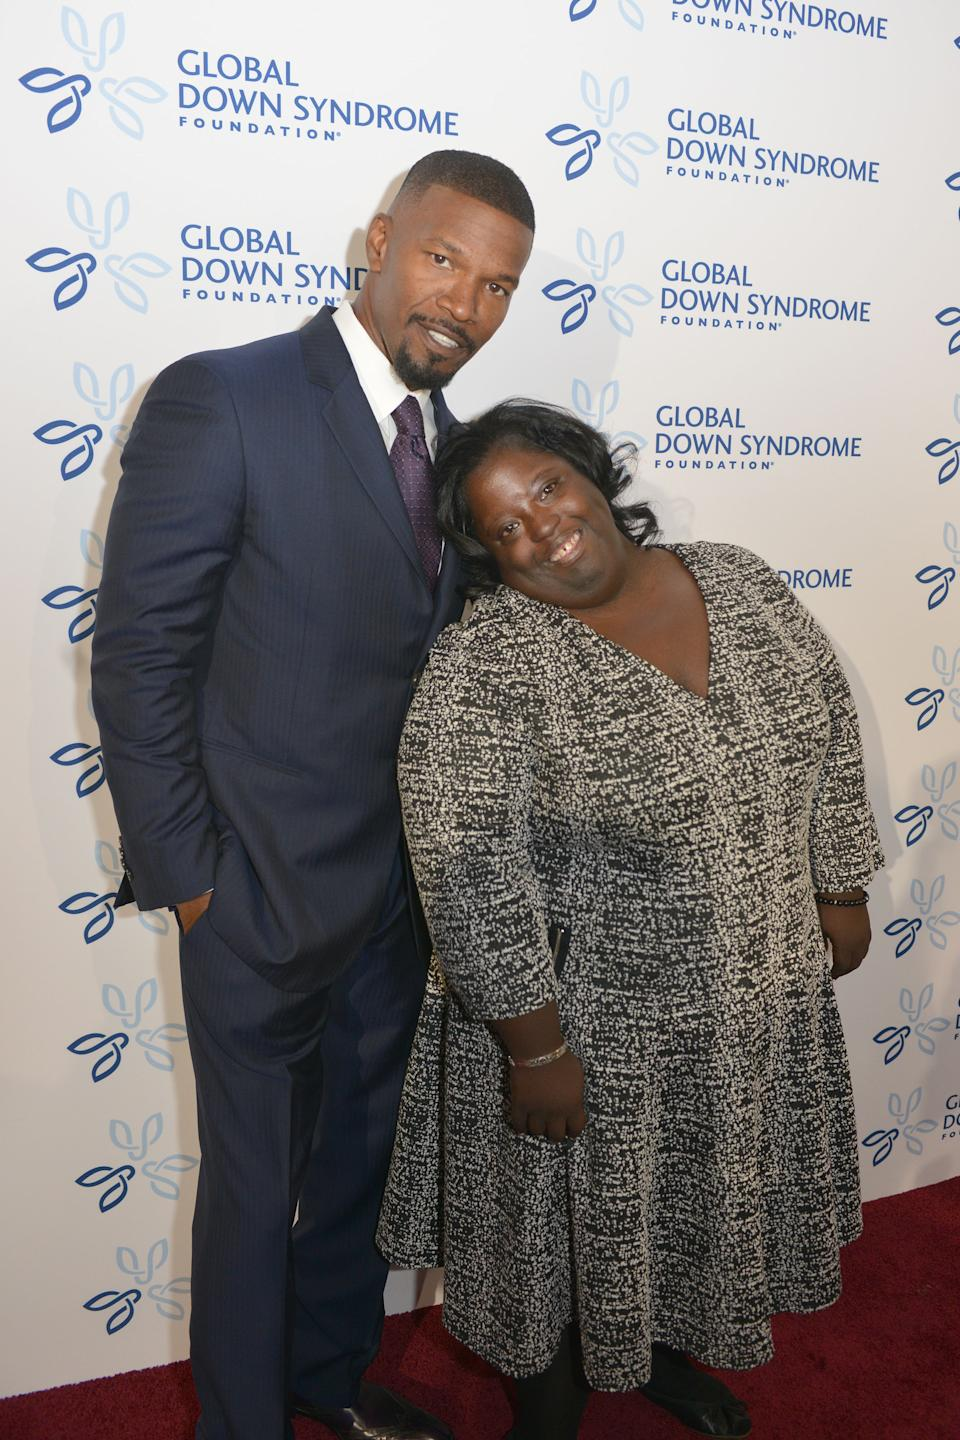 """DENVER, CO - NOVEMBER 12: Celebrity Jamie Foxx with his sister DeOndra Dixon on the red carpet at the at Global Down Syndrome Foundation's 2016 """"Be Beautiful Be Yourself"""" at the Hyatt Regency Denver at the Colorado Convention Center on November 12, 2016 in Denver, Colorado.  (Photo by Thomas Cooper/Getty Images,)"""